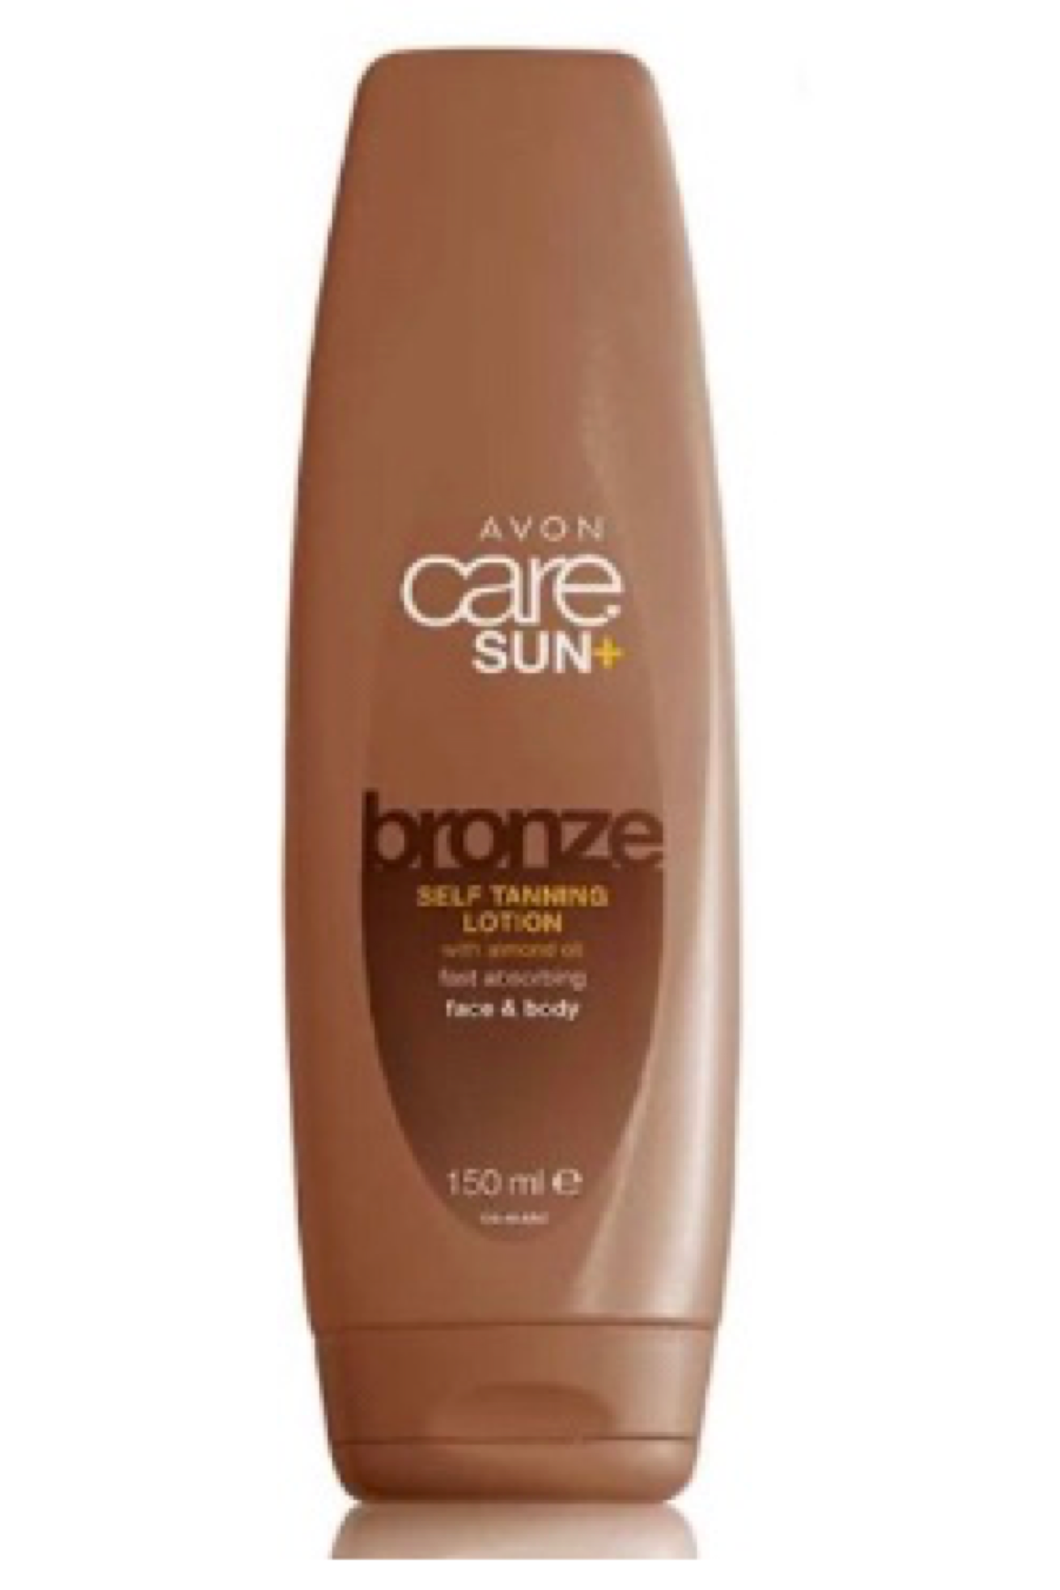 Avon Care Sun Bronze Moisturising Self-Tan Face & Body Lotion - 150ml